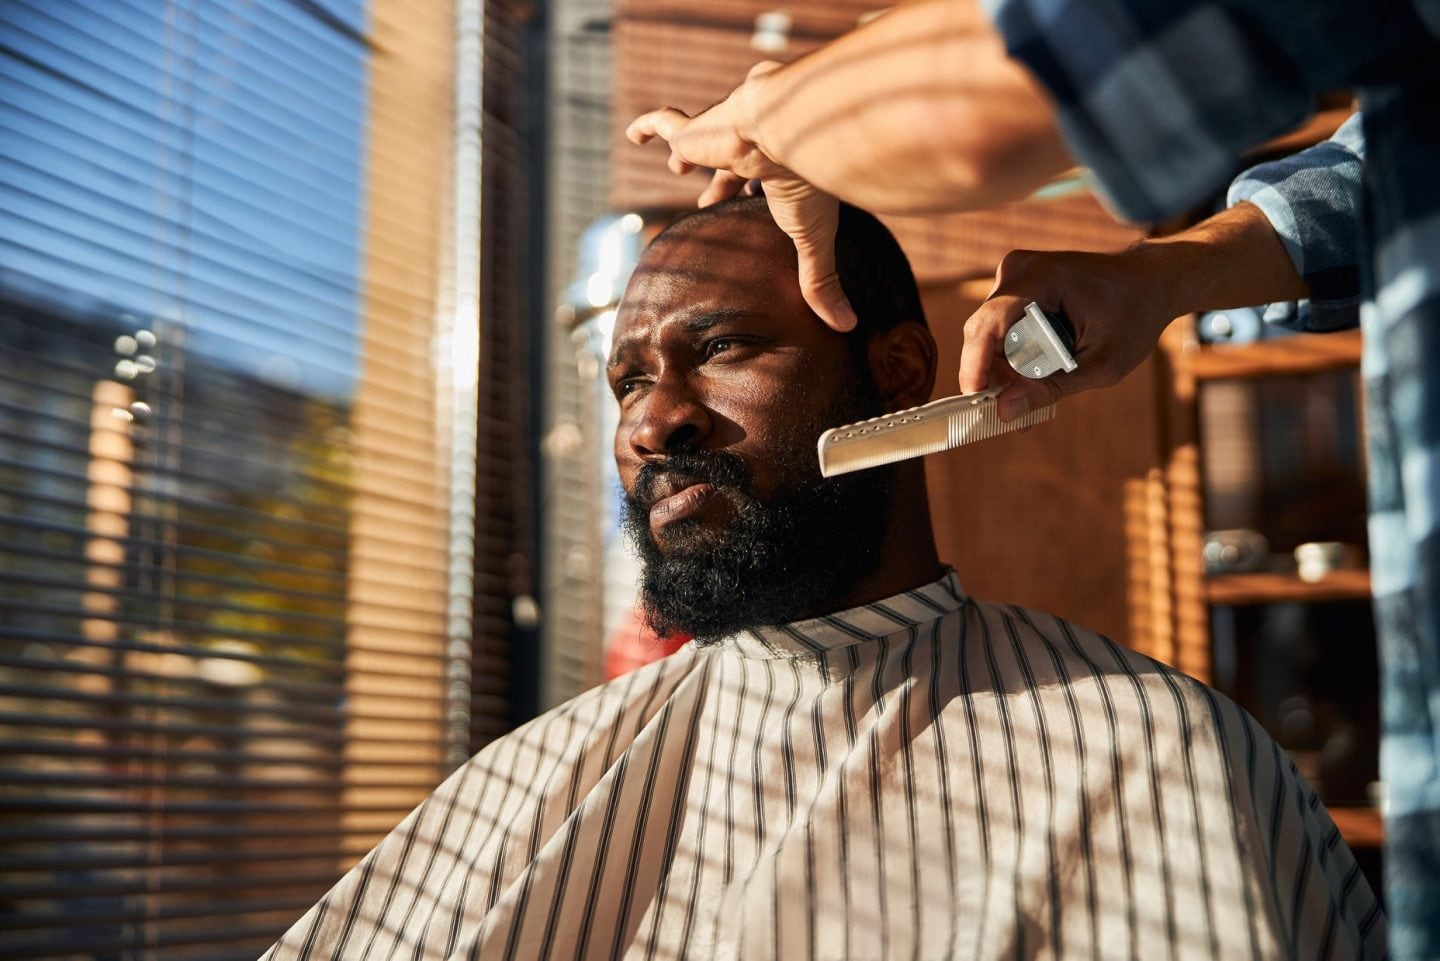 Barber school is a great way to connect with people